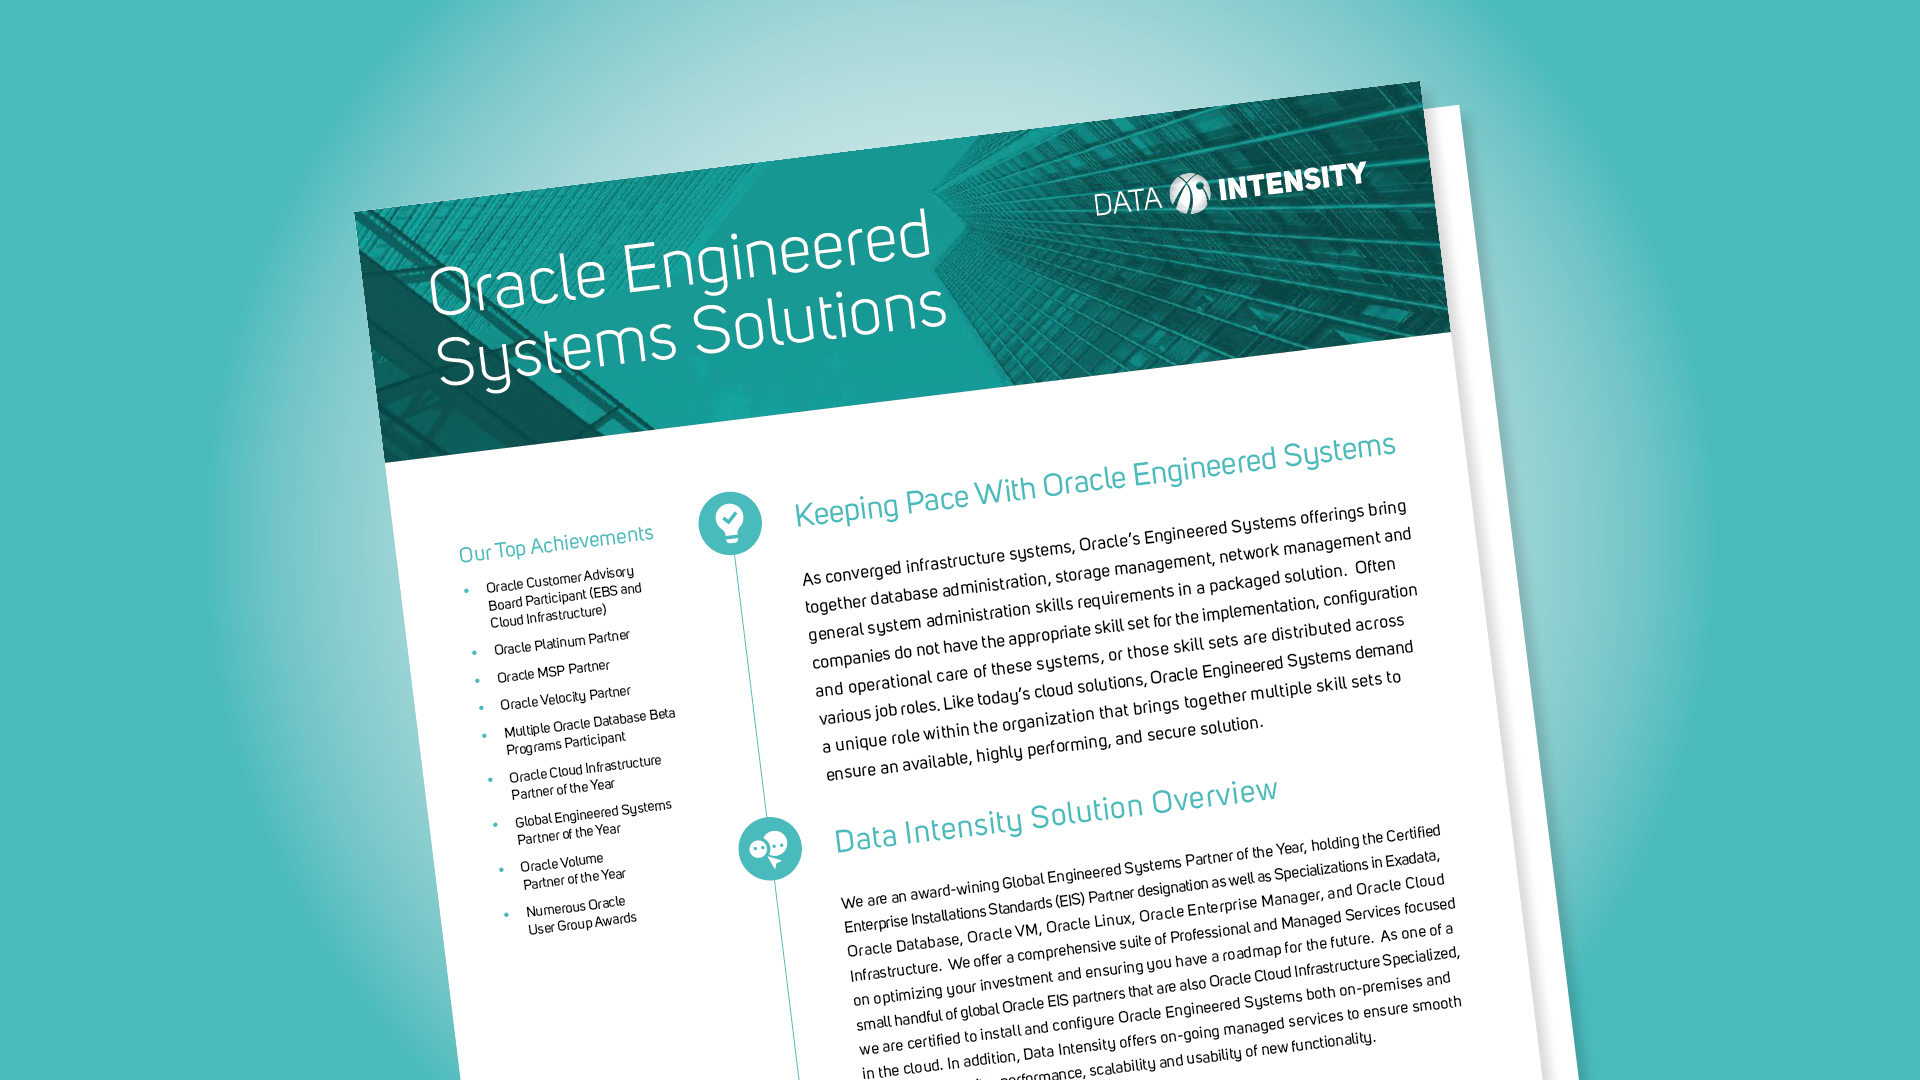 Oracle Engineered Systems Solutions